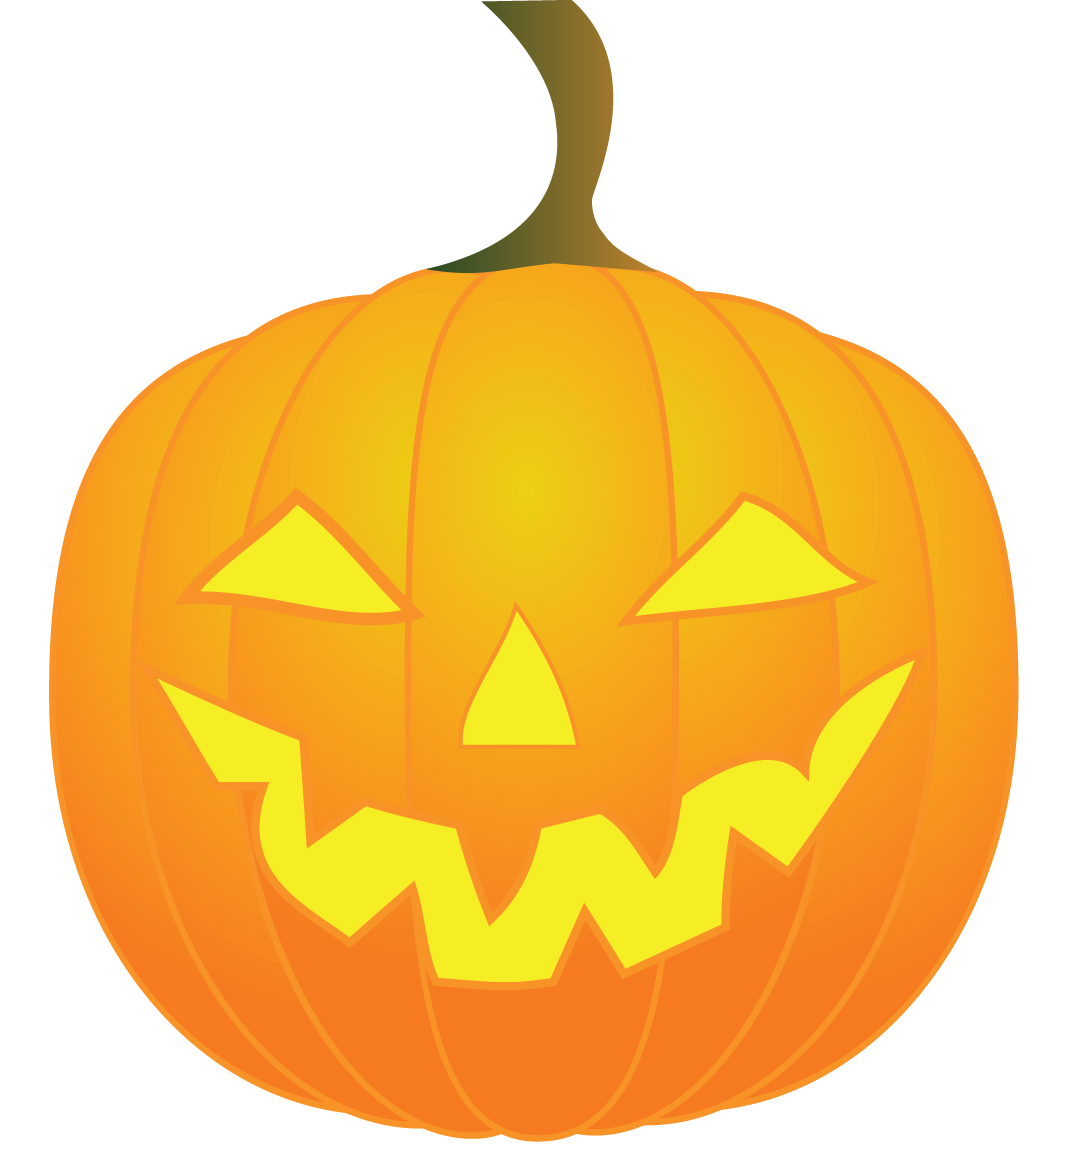 1076x1163 Free To Use Amp Public Domain Pumpkin Clip Art